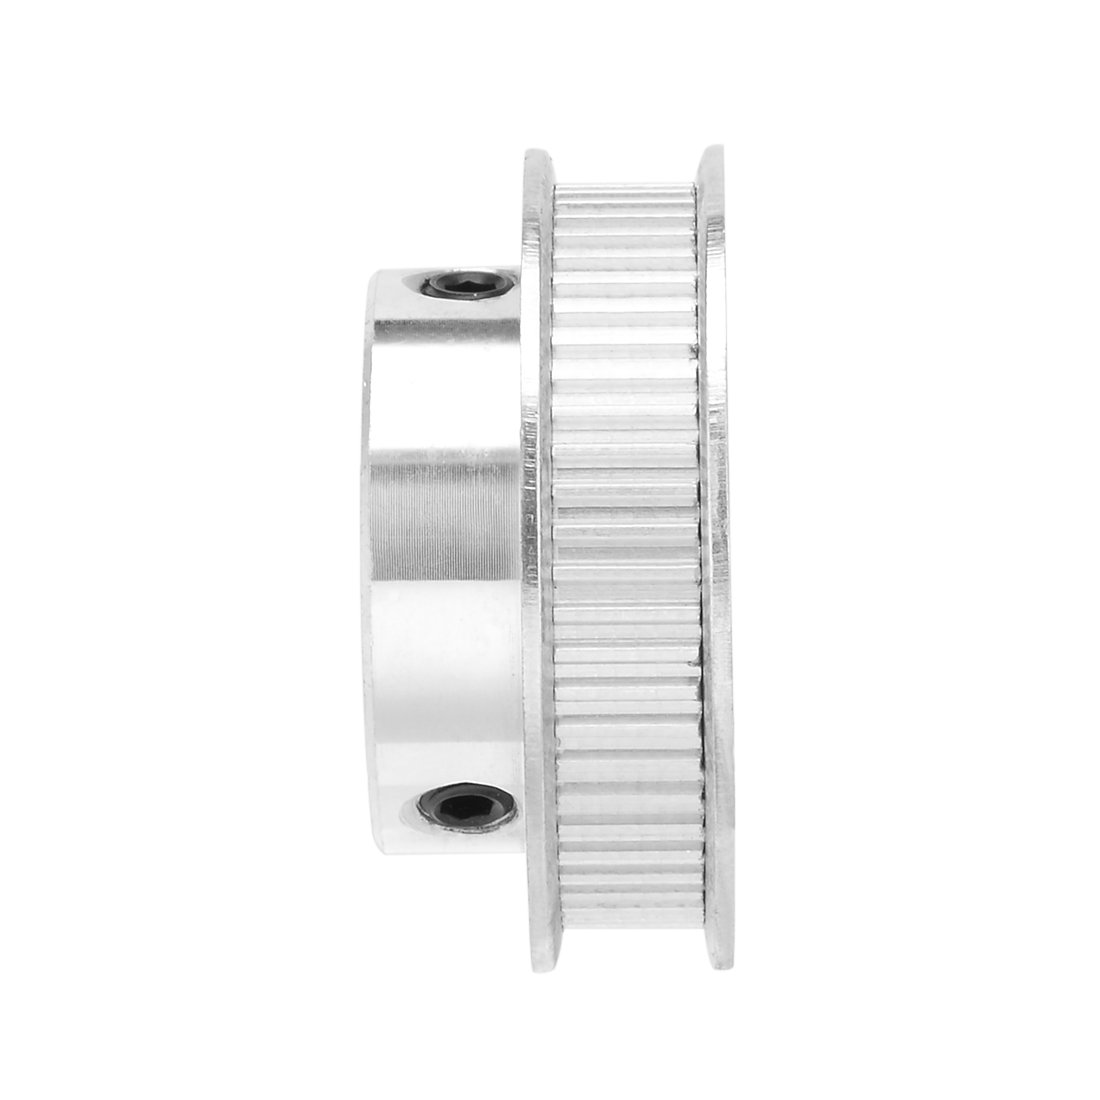 uxcell Aluminum XL 40 Teeth 10mm Bore Timing Belt Pulley Flange Synchronous Wheel for 10mm Belt 3D Printer